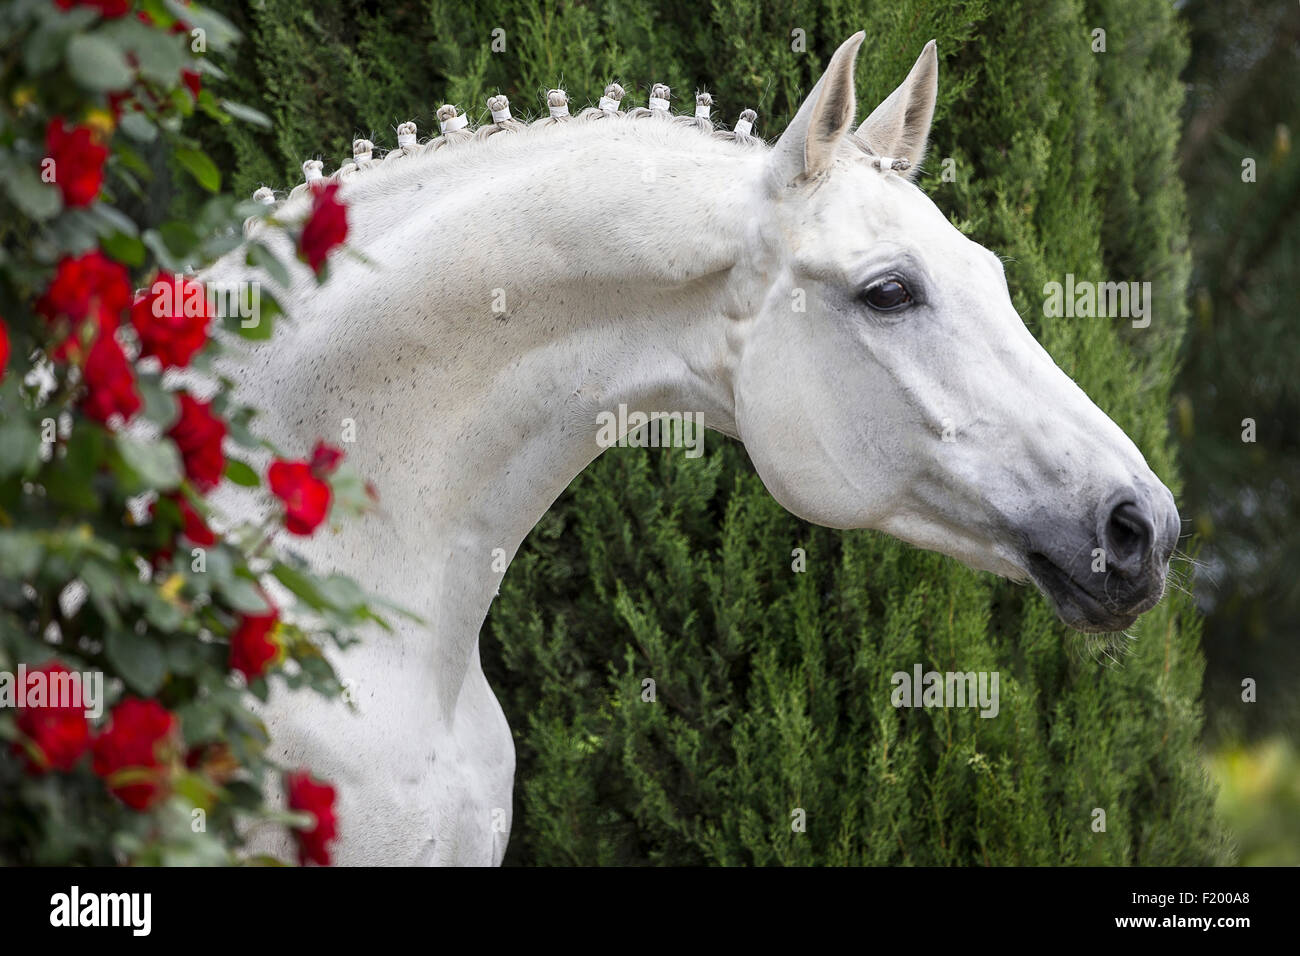 Watch - Oldenburg White horse pictures video